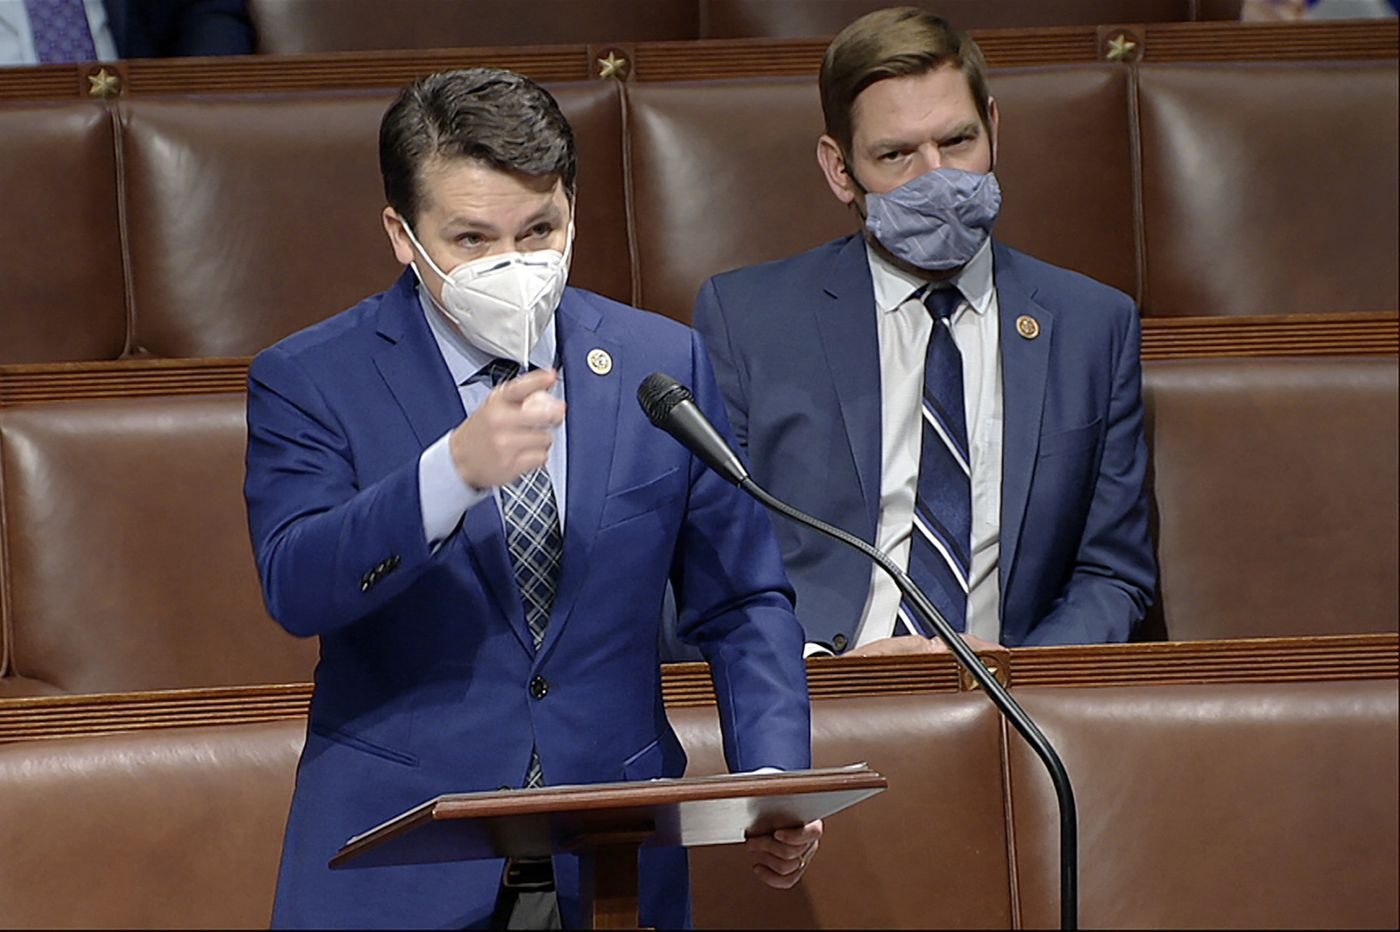 Rep. Brendan Boyle: I never imagined I'd live through an insurrection at the Capitol | Opinion